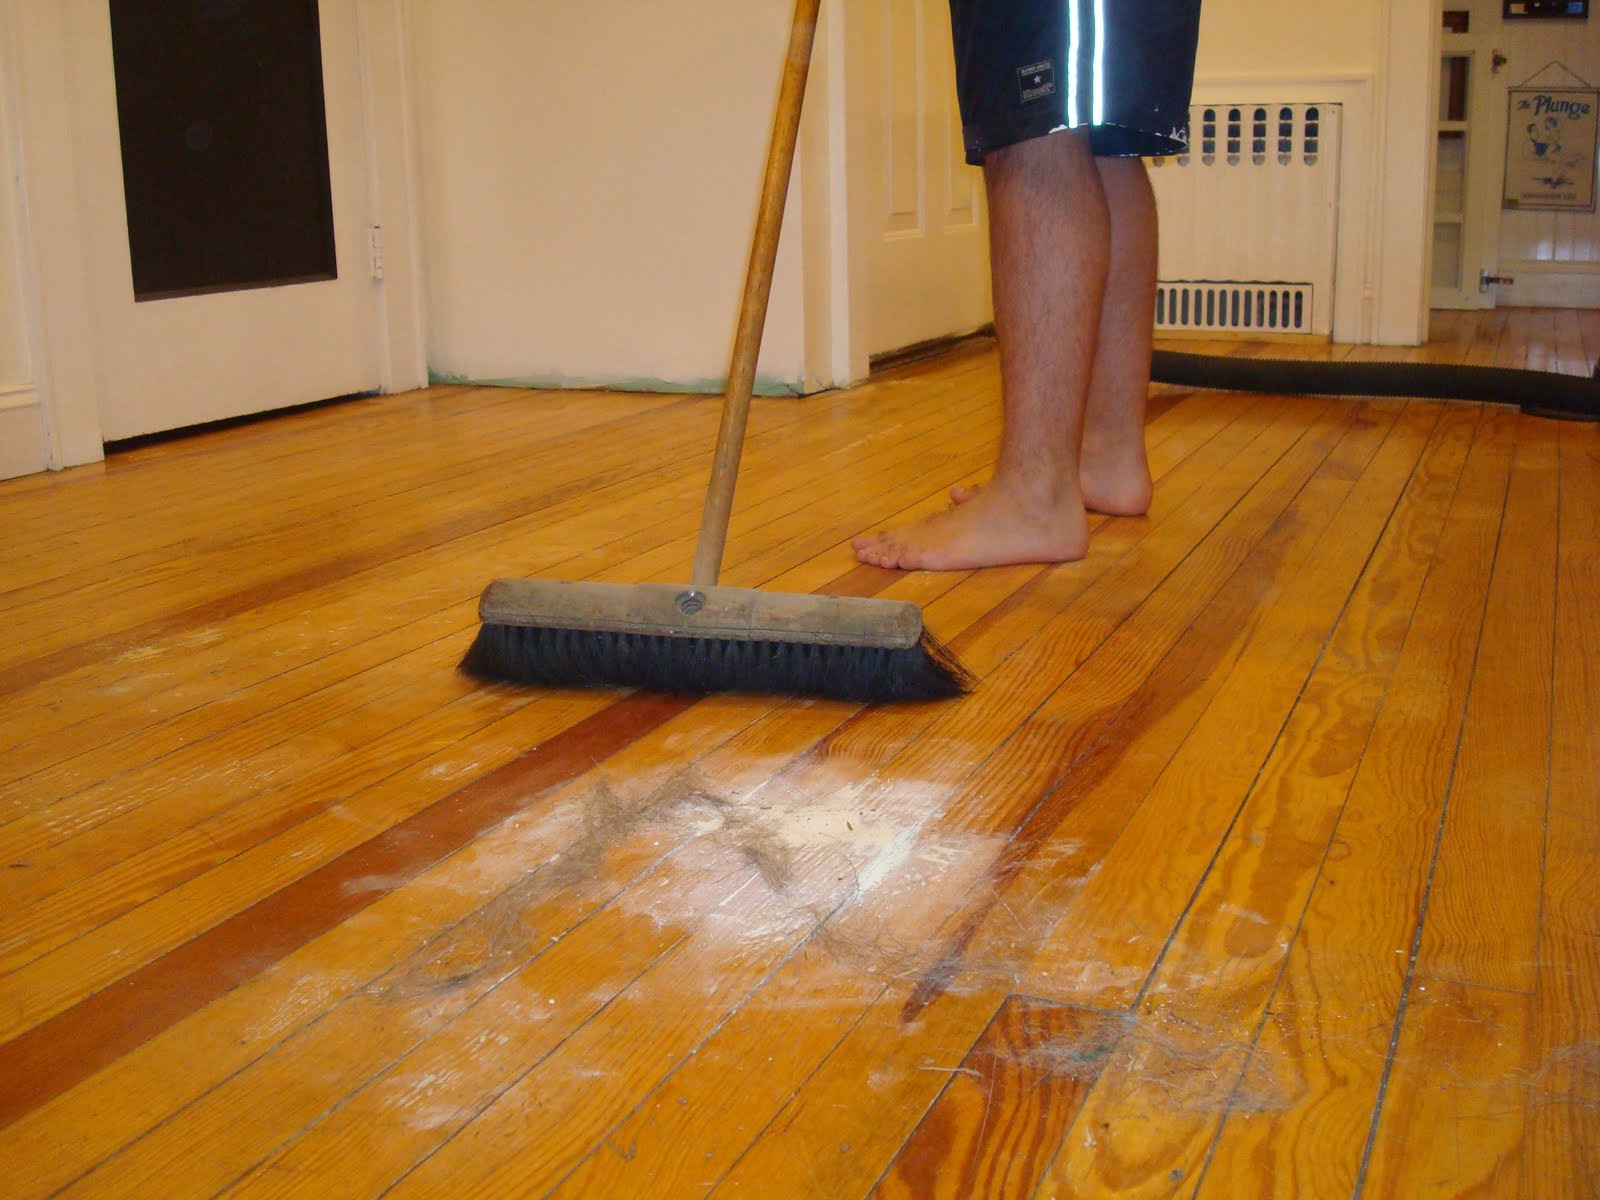 Fleas and Hardwood Floors Of Cleaning Hardwood Floors with Vinegar 50 Unique How to Clean In Cleaning Hardwood Floors with Vinegar Hardwood Floor Cleaning How Do You Clean Hardwood Floors Cleaning